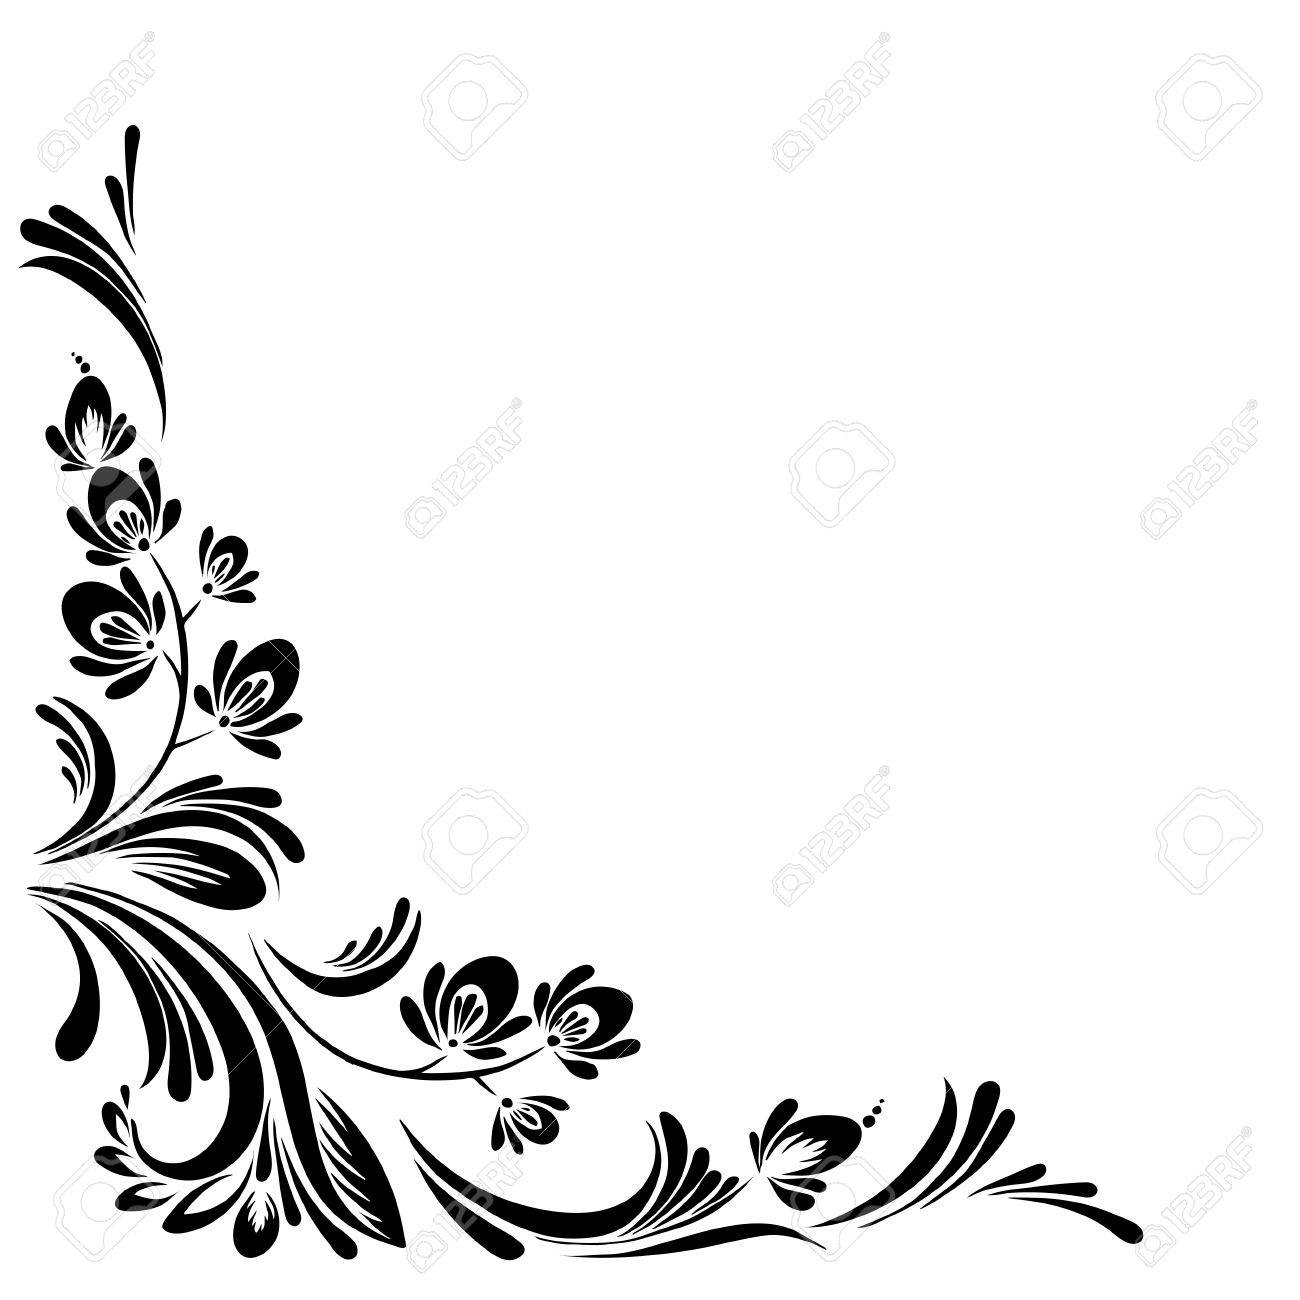 vector Black and white pattern with flowers, an ethnic Ukrainian ornament - 70446405